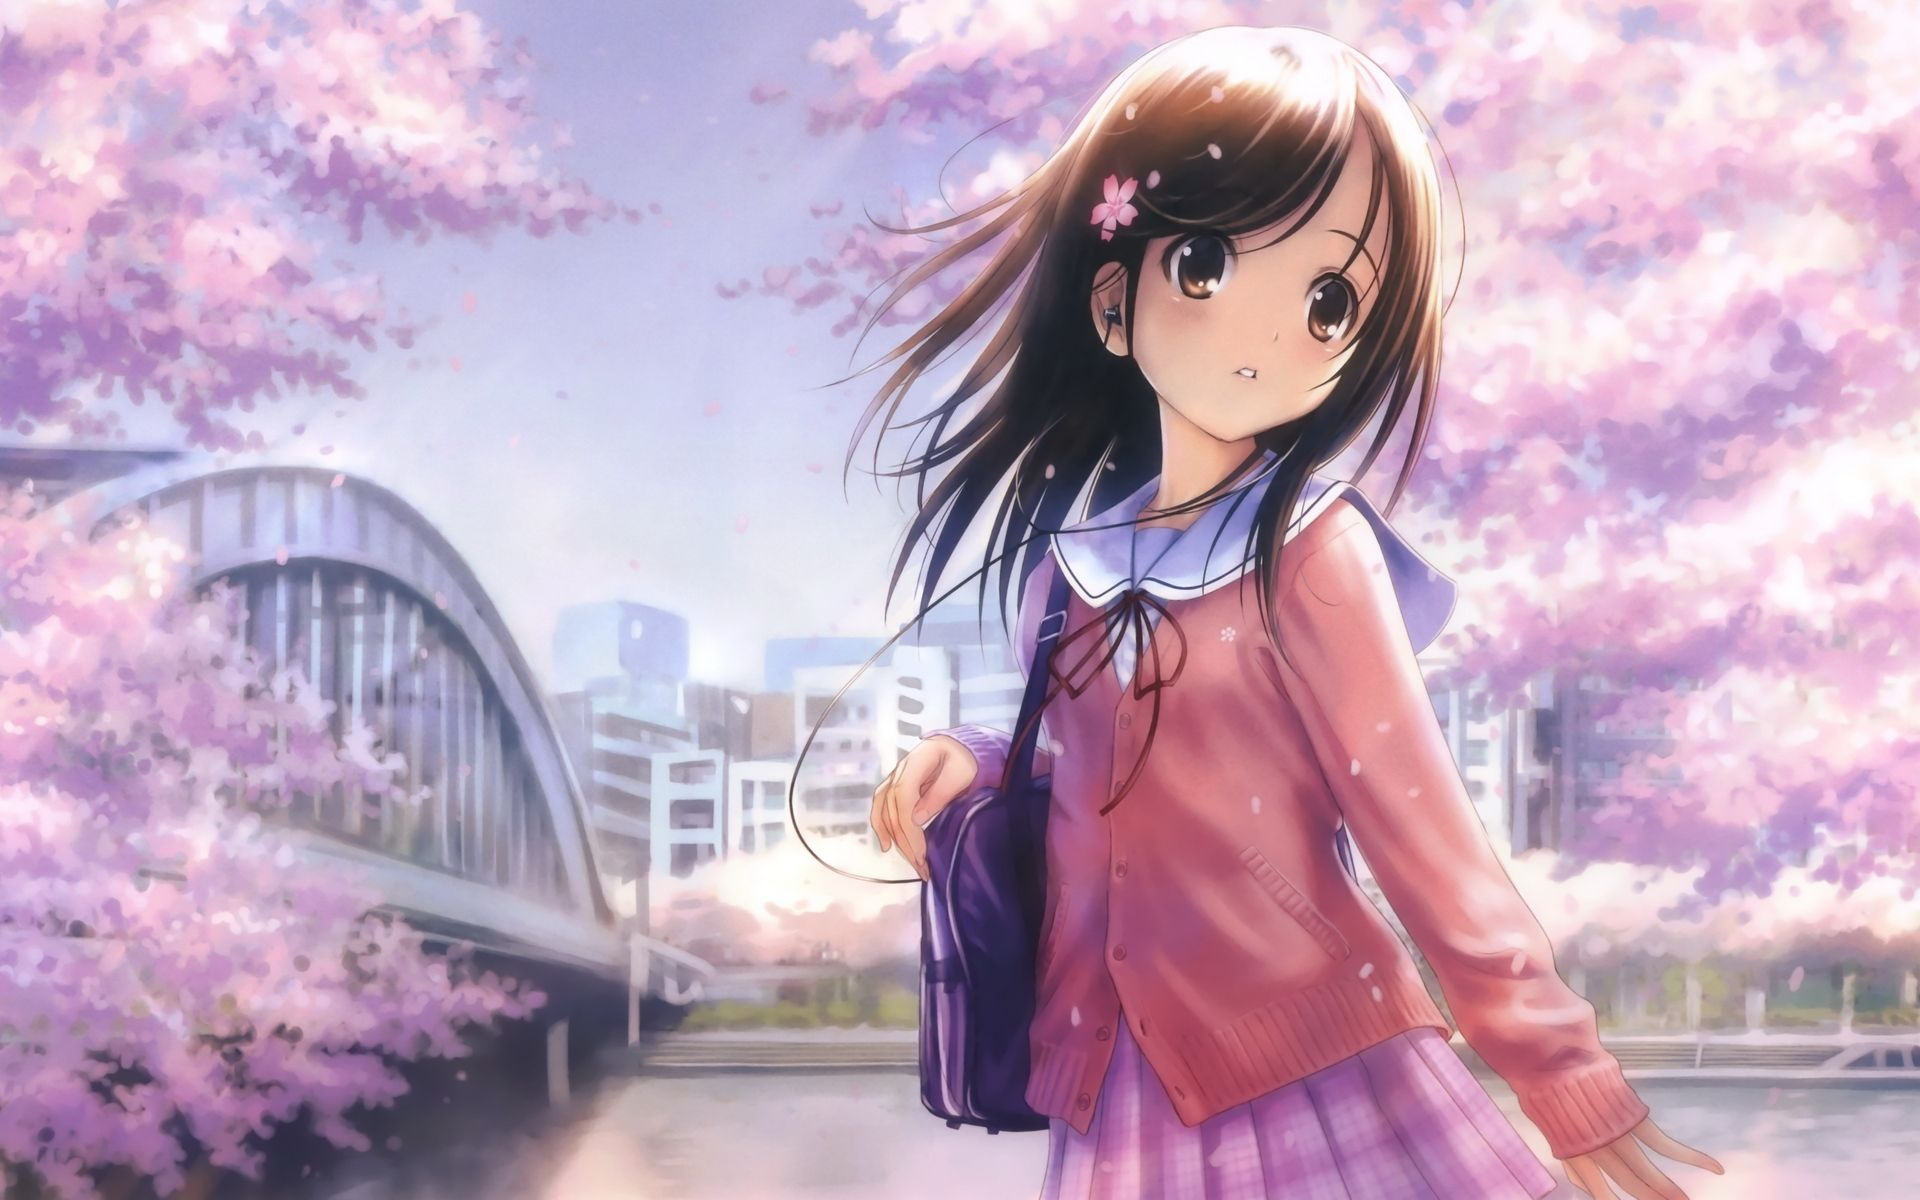 Pin On Cute Anime Girl Hd Wallpapers